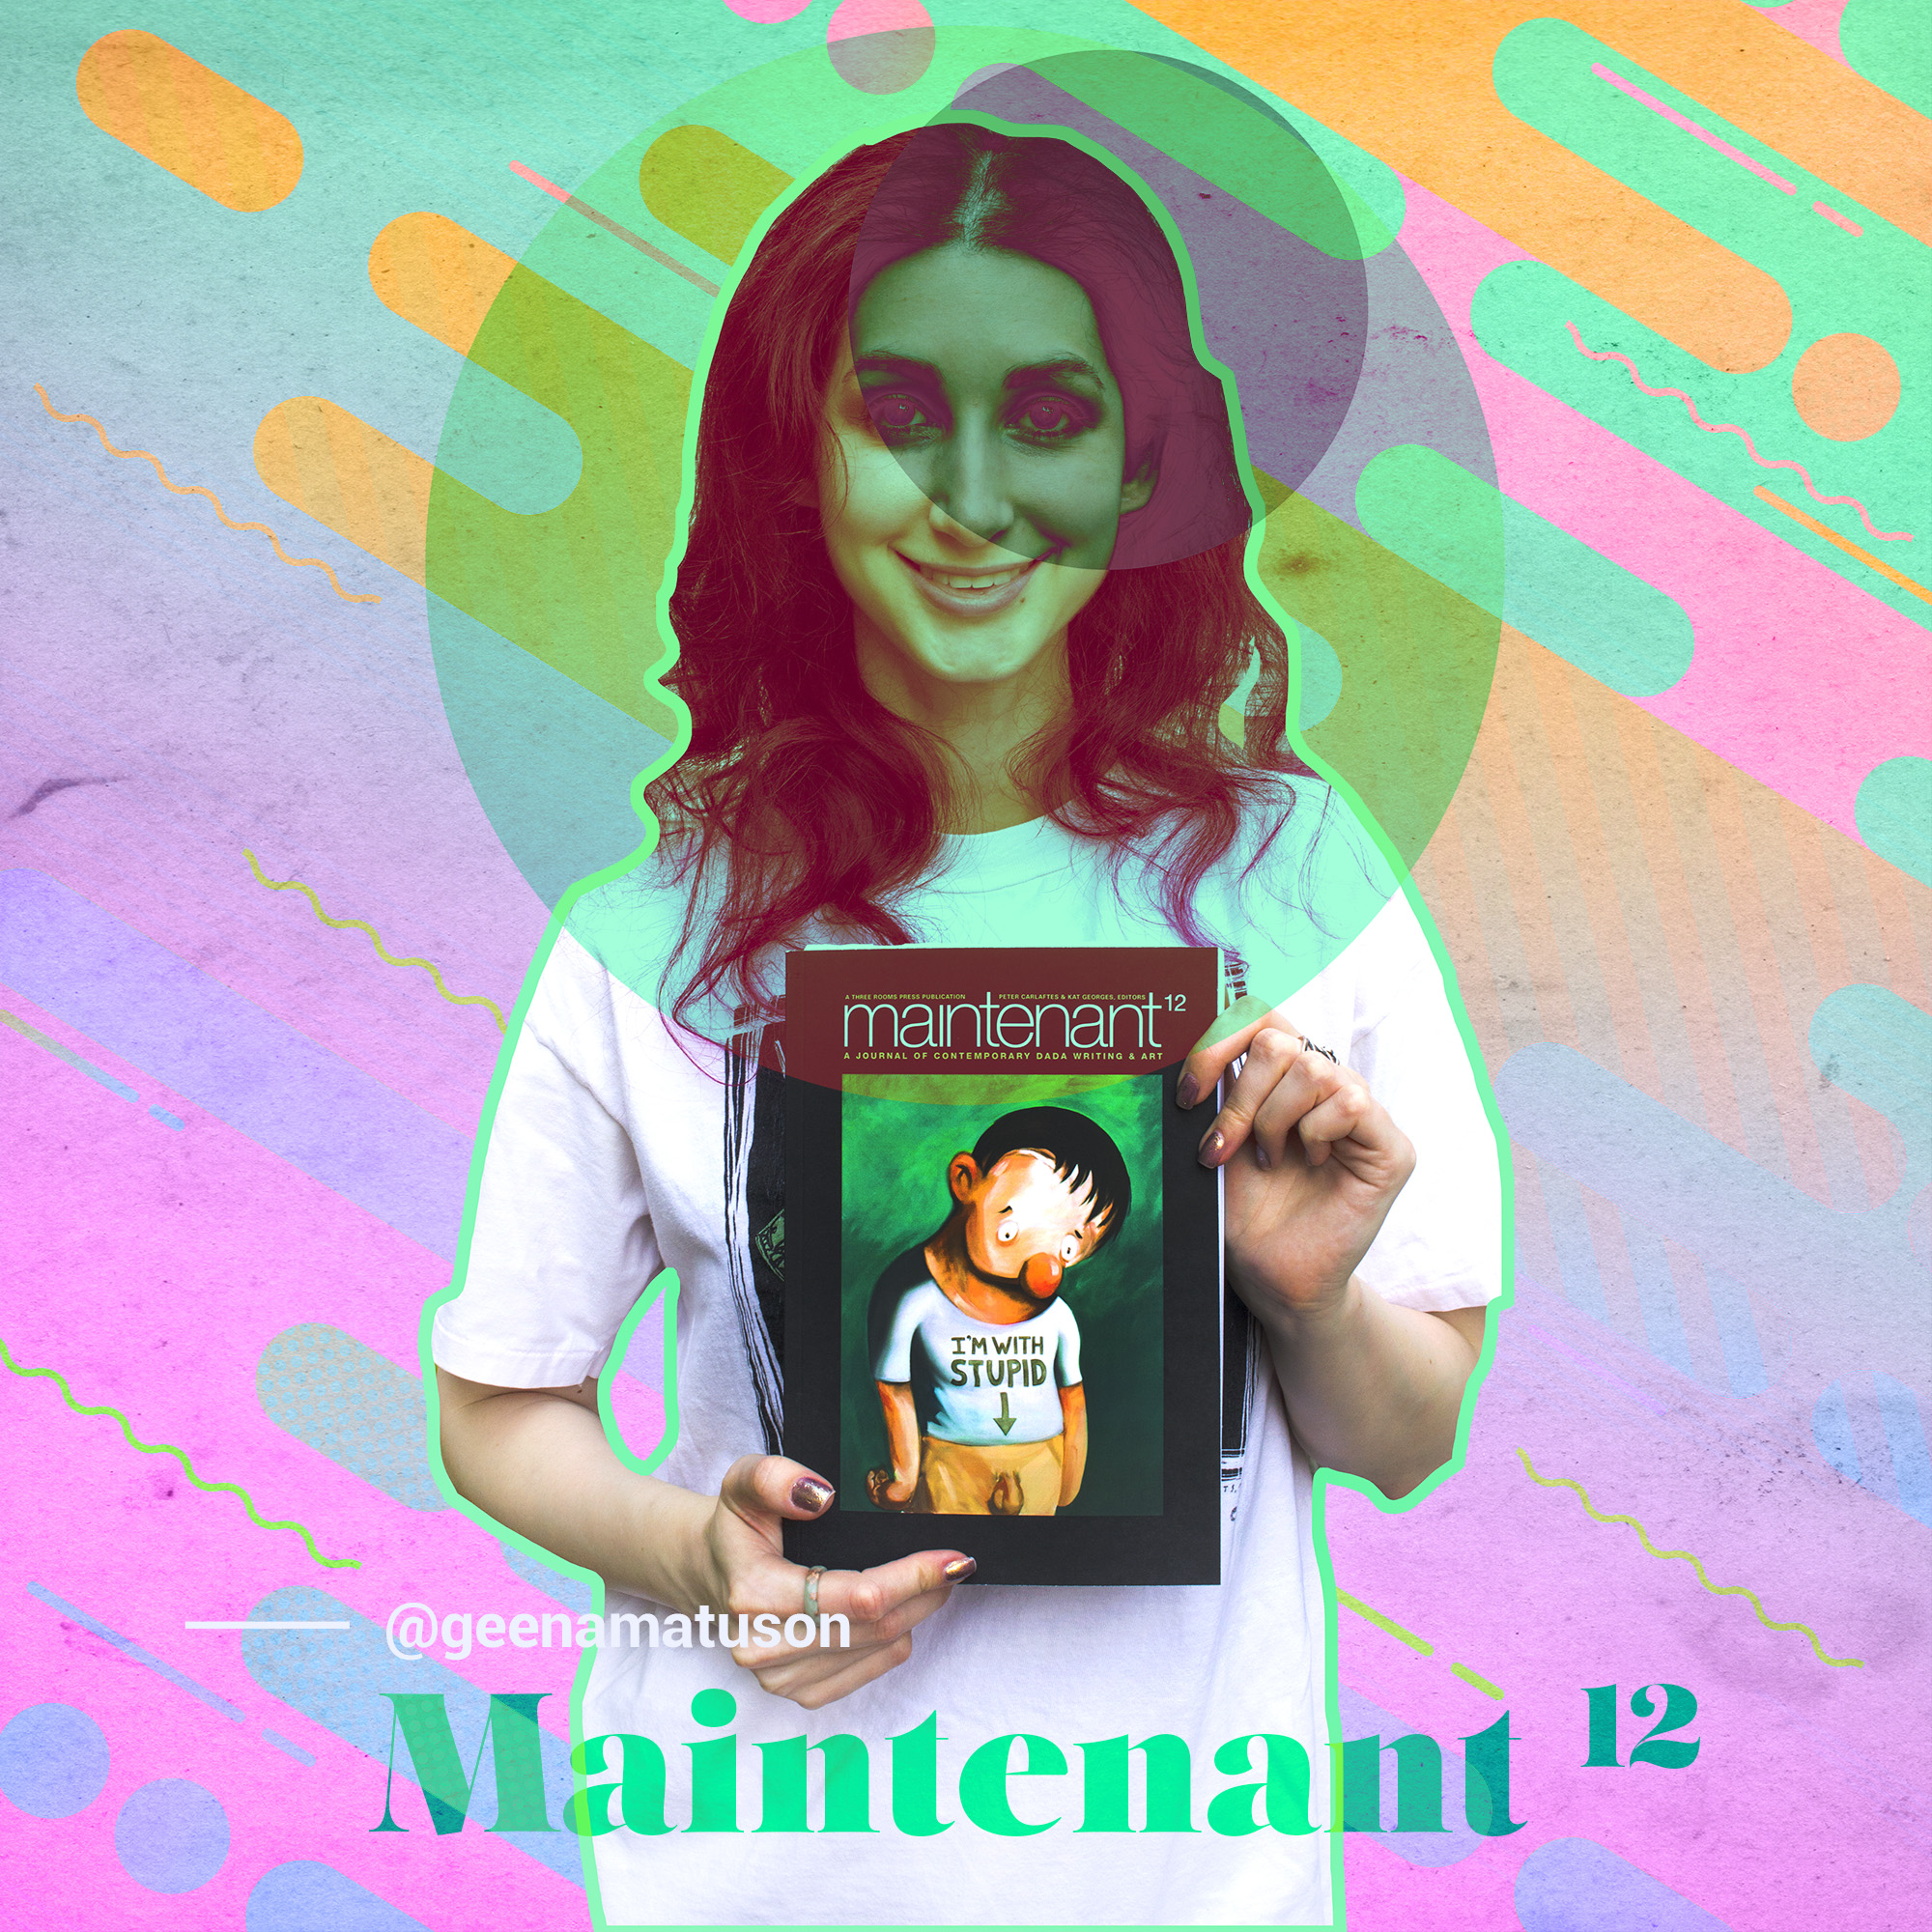 """The Girl Mirage"" Geena Matuson (@geenamatuson) with Three Rooms Press book 'Maintanent 12' featuring her dada artwork ""SCREAM"" @ threeroomspress.com."